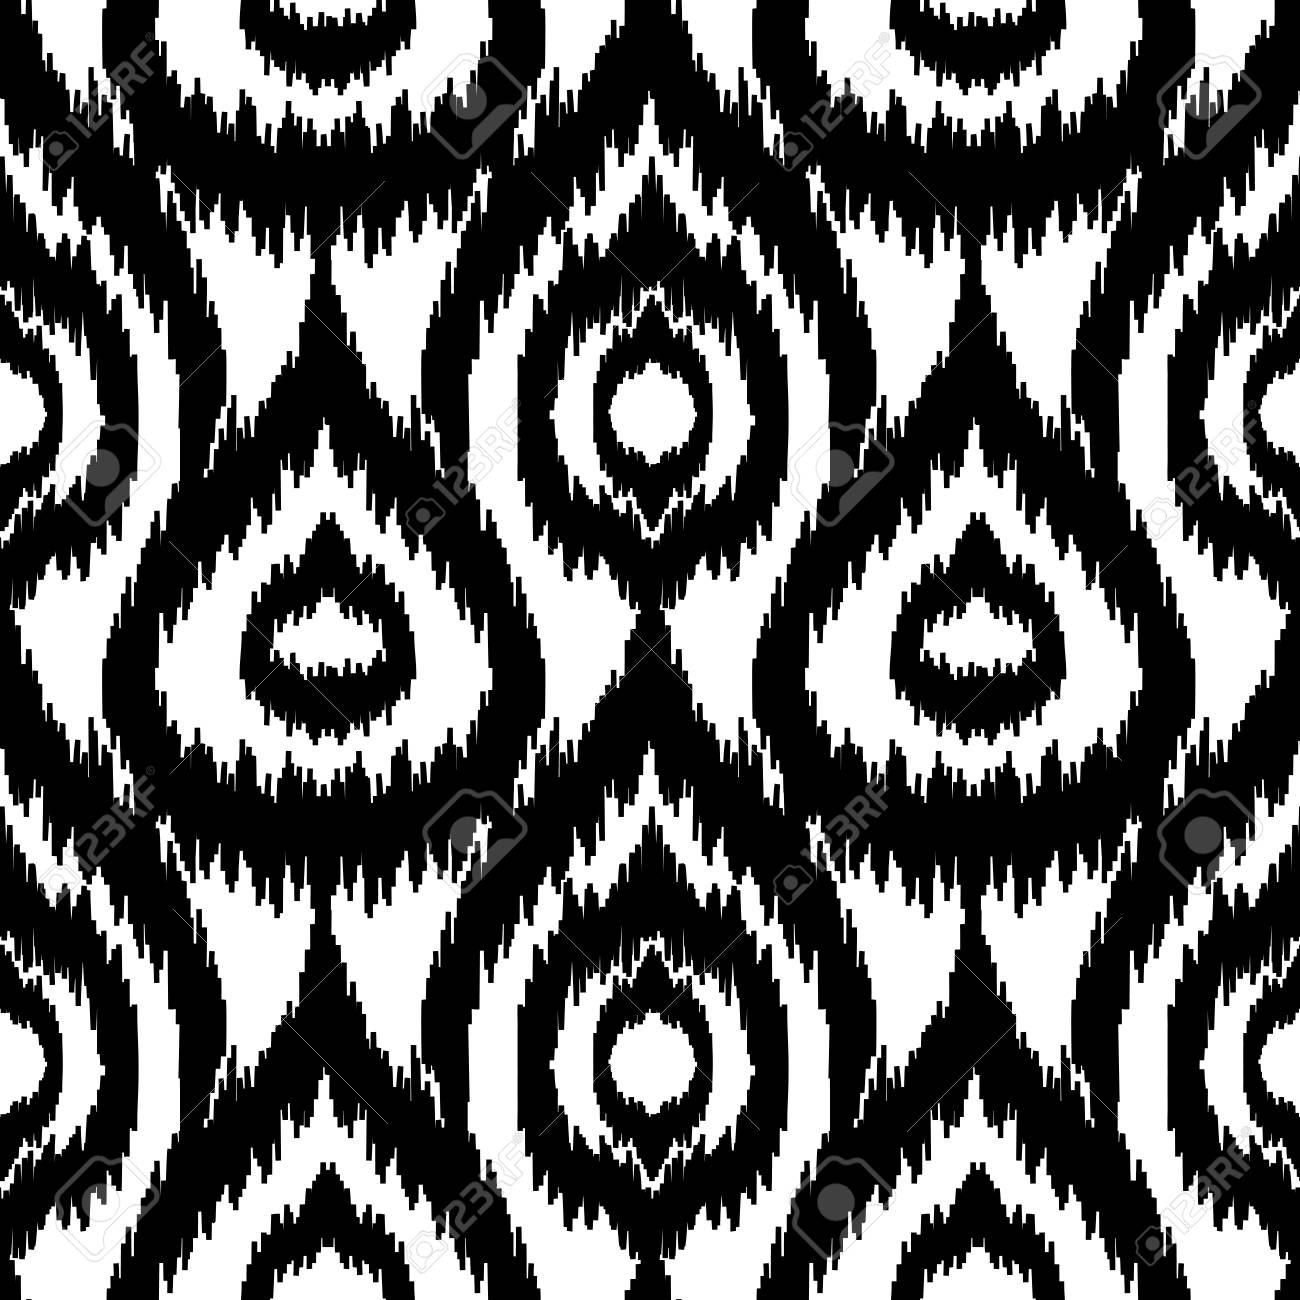 Ethnic Seamless Black And White Pattern Boho Textile Print Geometric Wallpaper With Abstract Drops